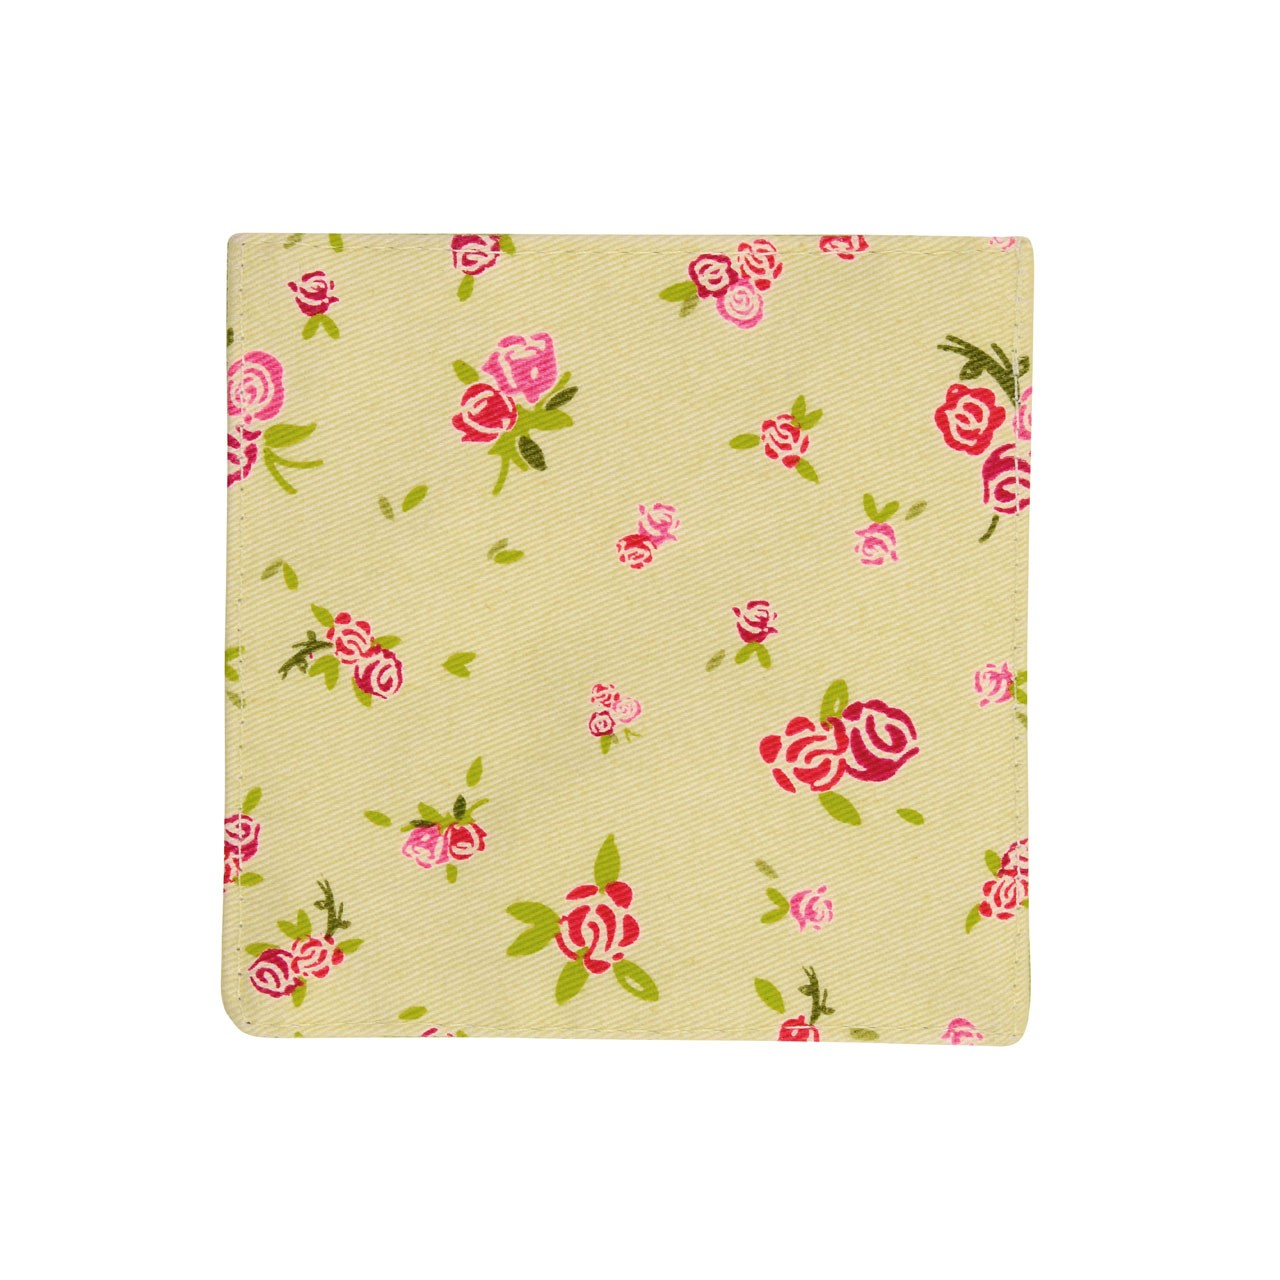 Cotton Rose Cottage Coaster - Set of 4